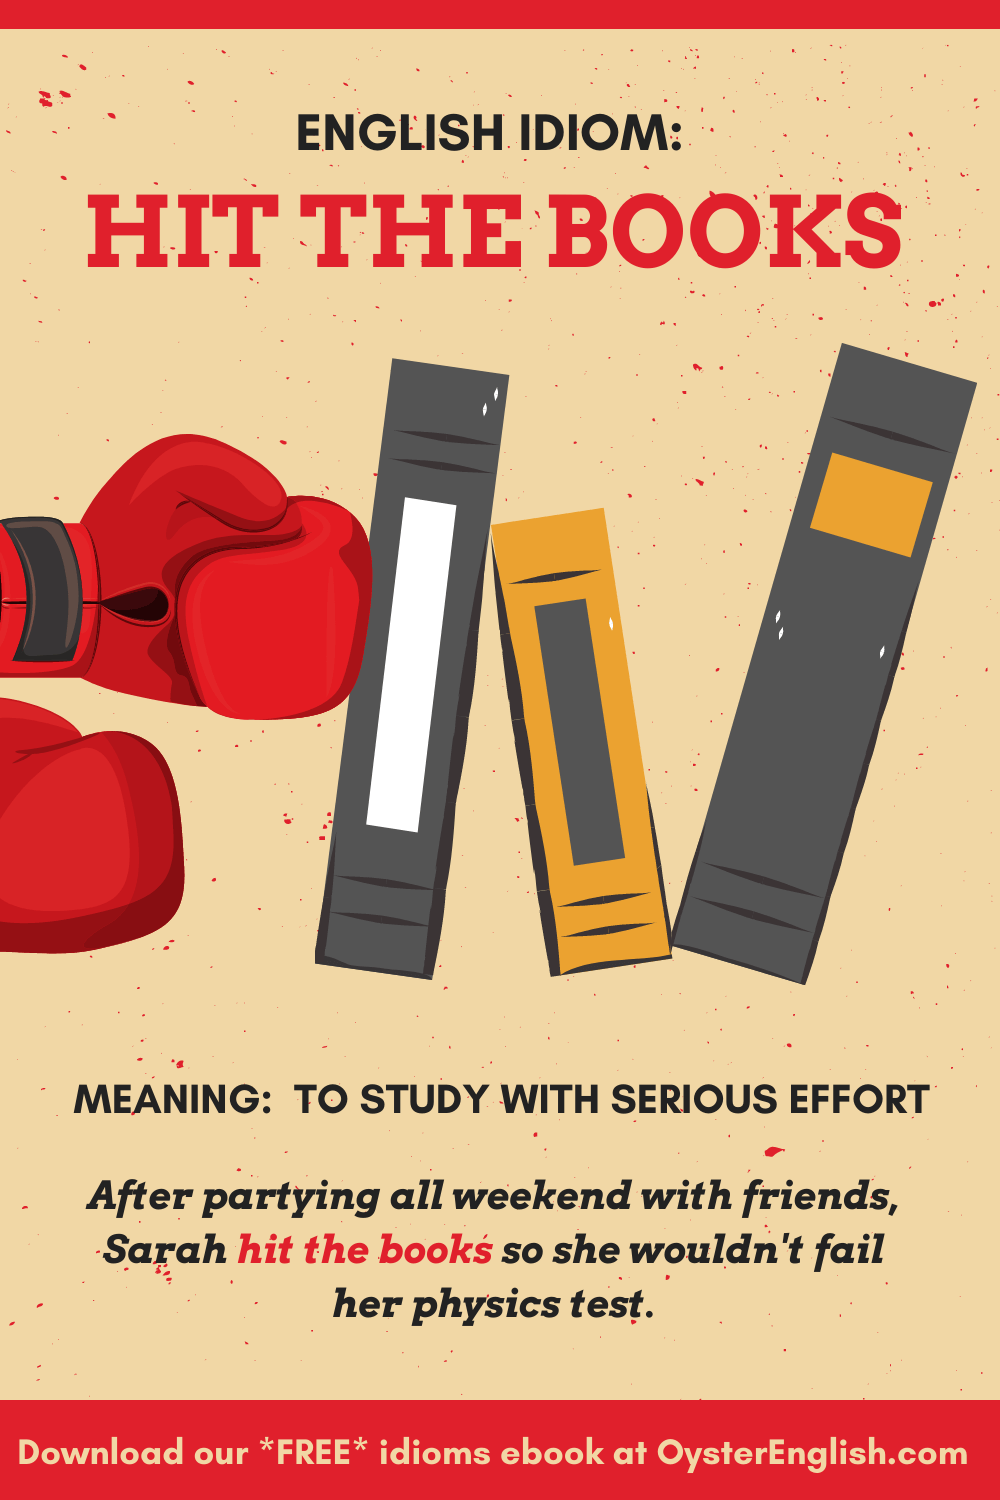 A pair of boxing gloves punch some books that are falling over. Caption: After partying all weekend with friends, Sarah hit the books so she wouldn't fail her physics test.